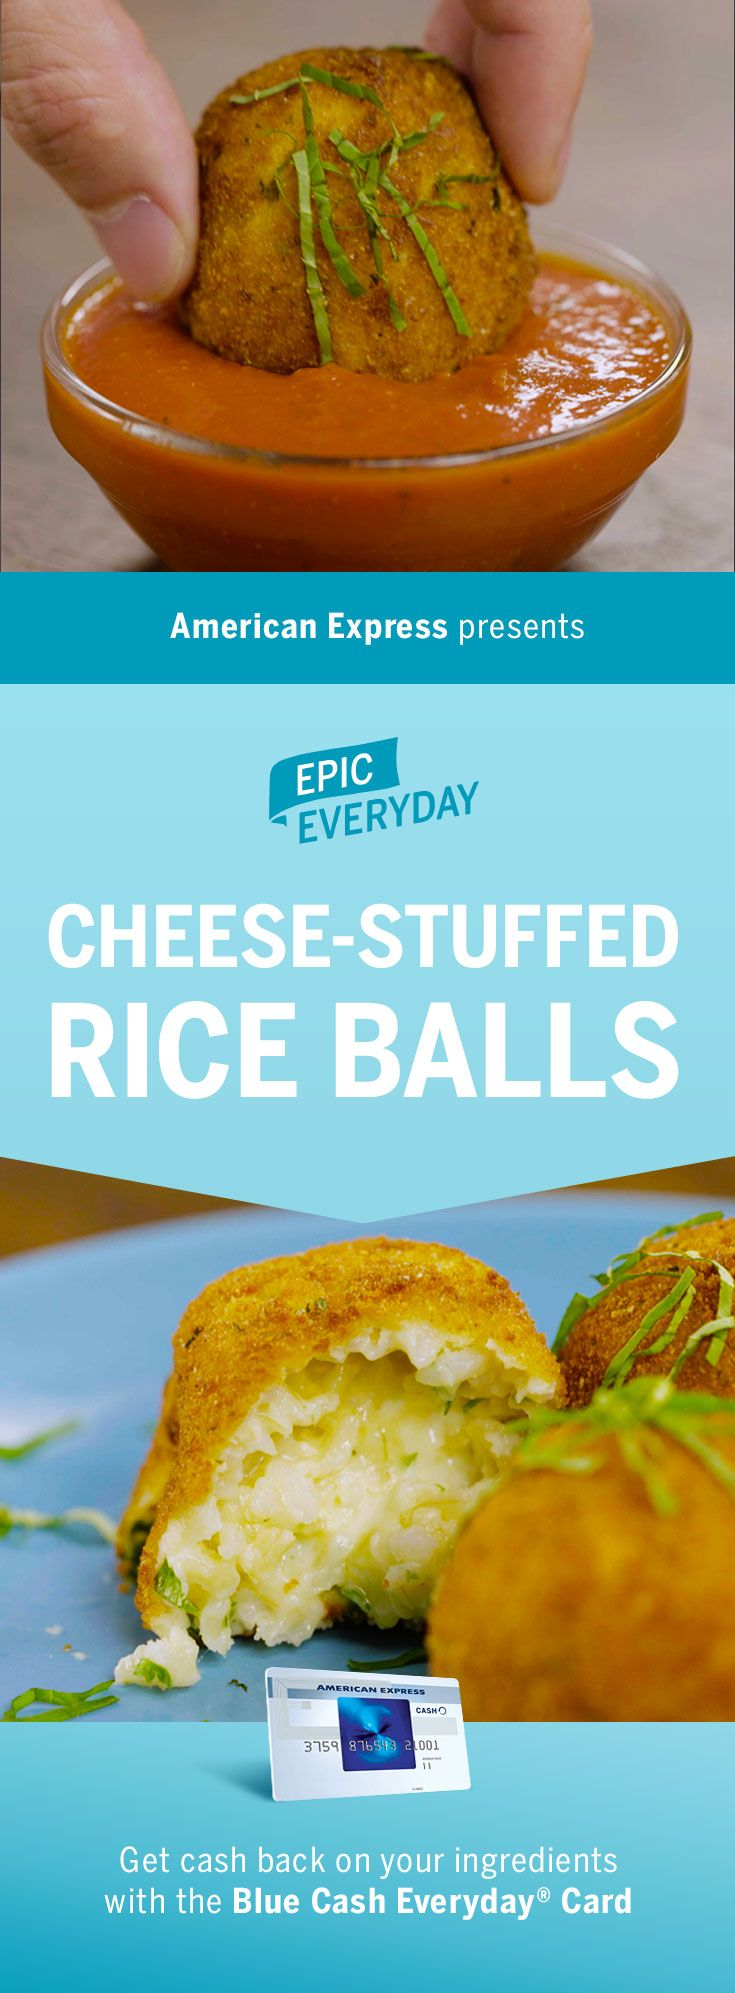 Who can resist this epic dish? We teamed with Buzzfeed for an Cheese-Stuffed Rice Ball recipe! With cheesy mozzarella inside and bread crumbs outside, this appetizer is an easy crowd pleaser. Great with any rice – white, brown, even leftover! Shop for the ingredients and get 3% cash back at US supermarkets on up to $6,000 in purchases with the Blue Cash Everyday Card from American Express. Terms apply. Learn more at americanexpress.com/epiceveryday. Click the pin to get the full recipe and…